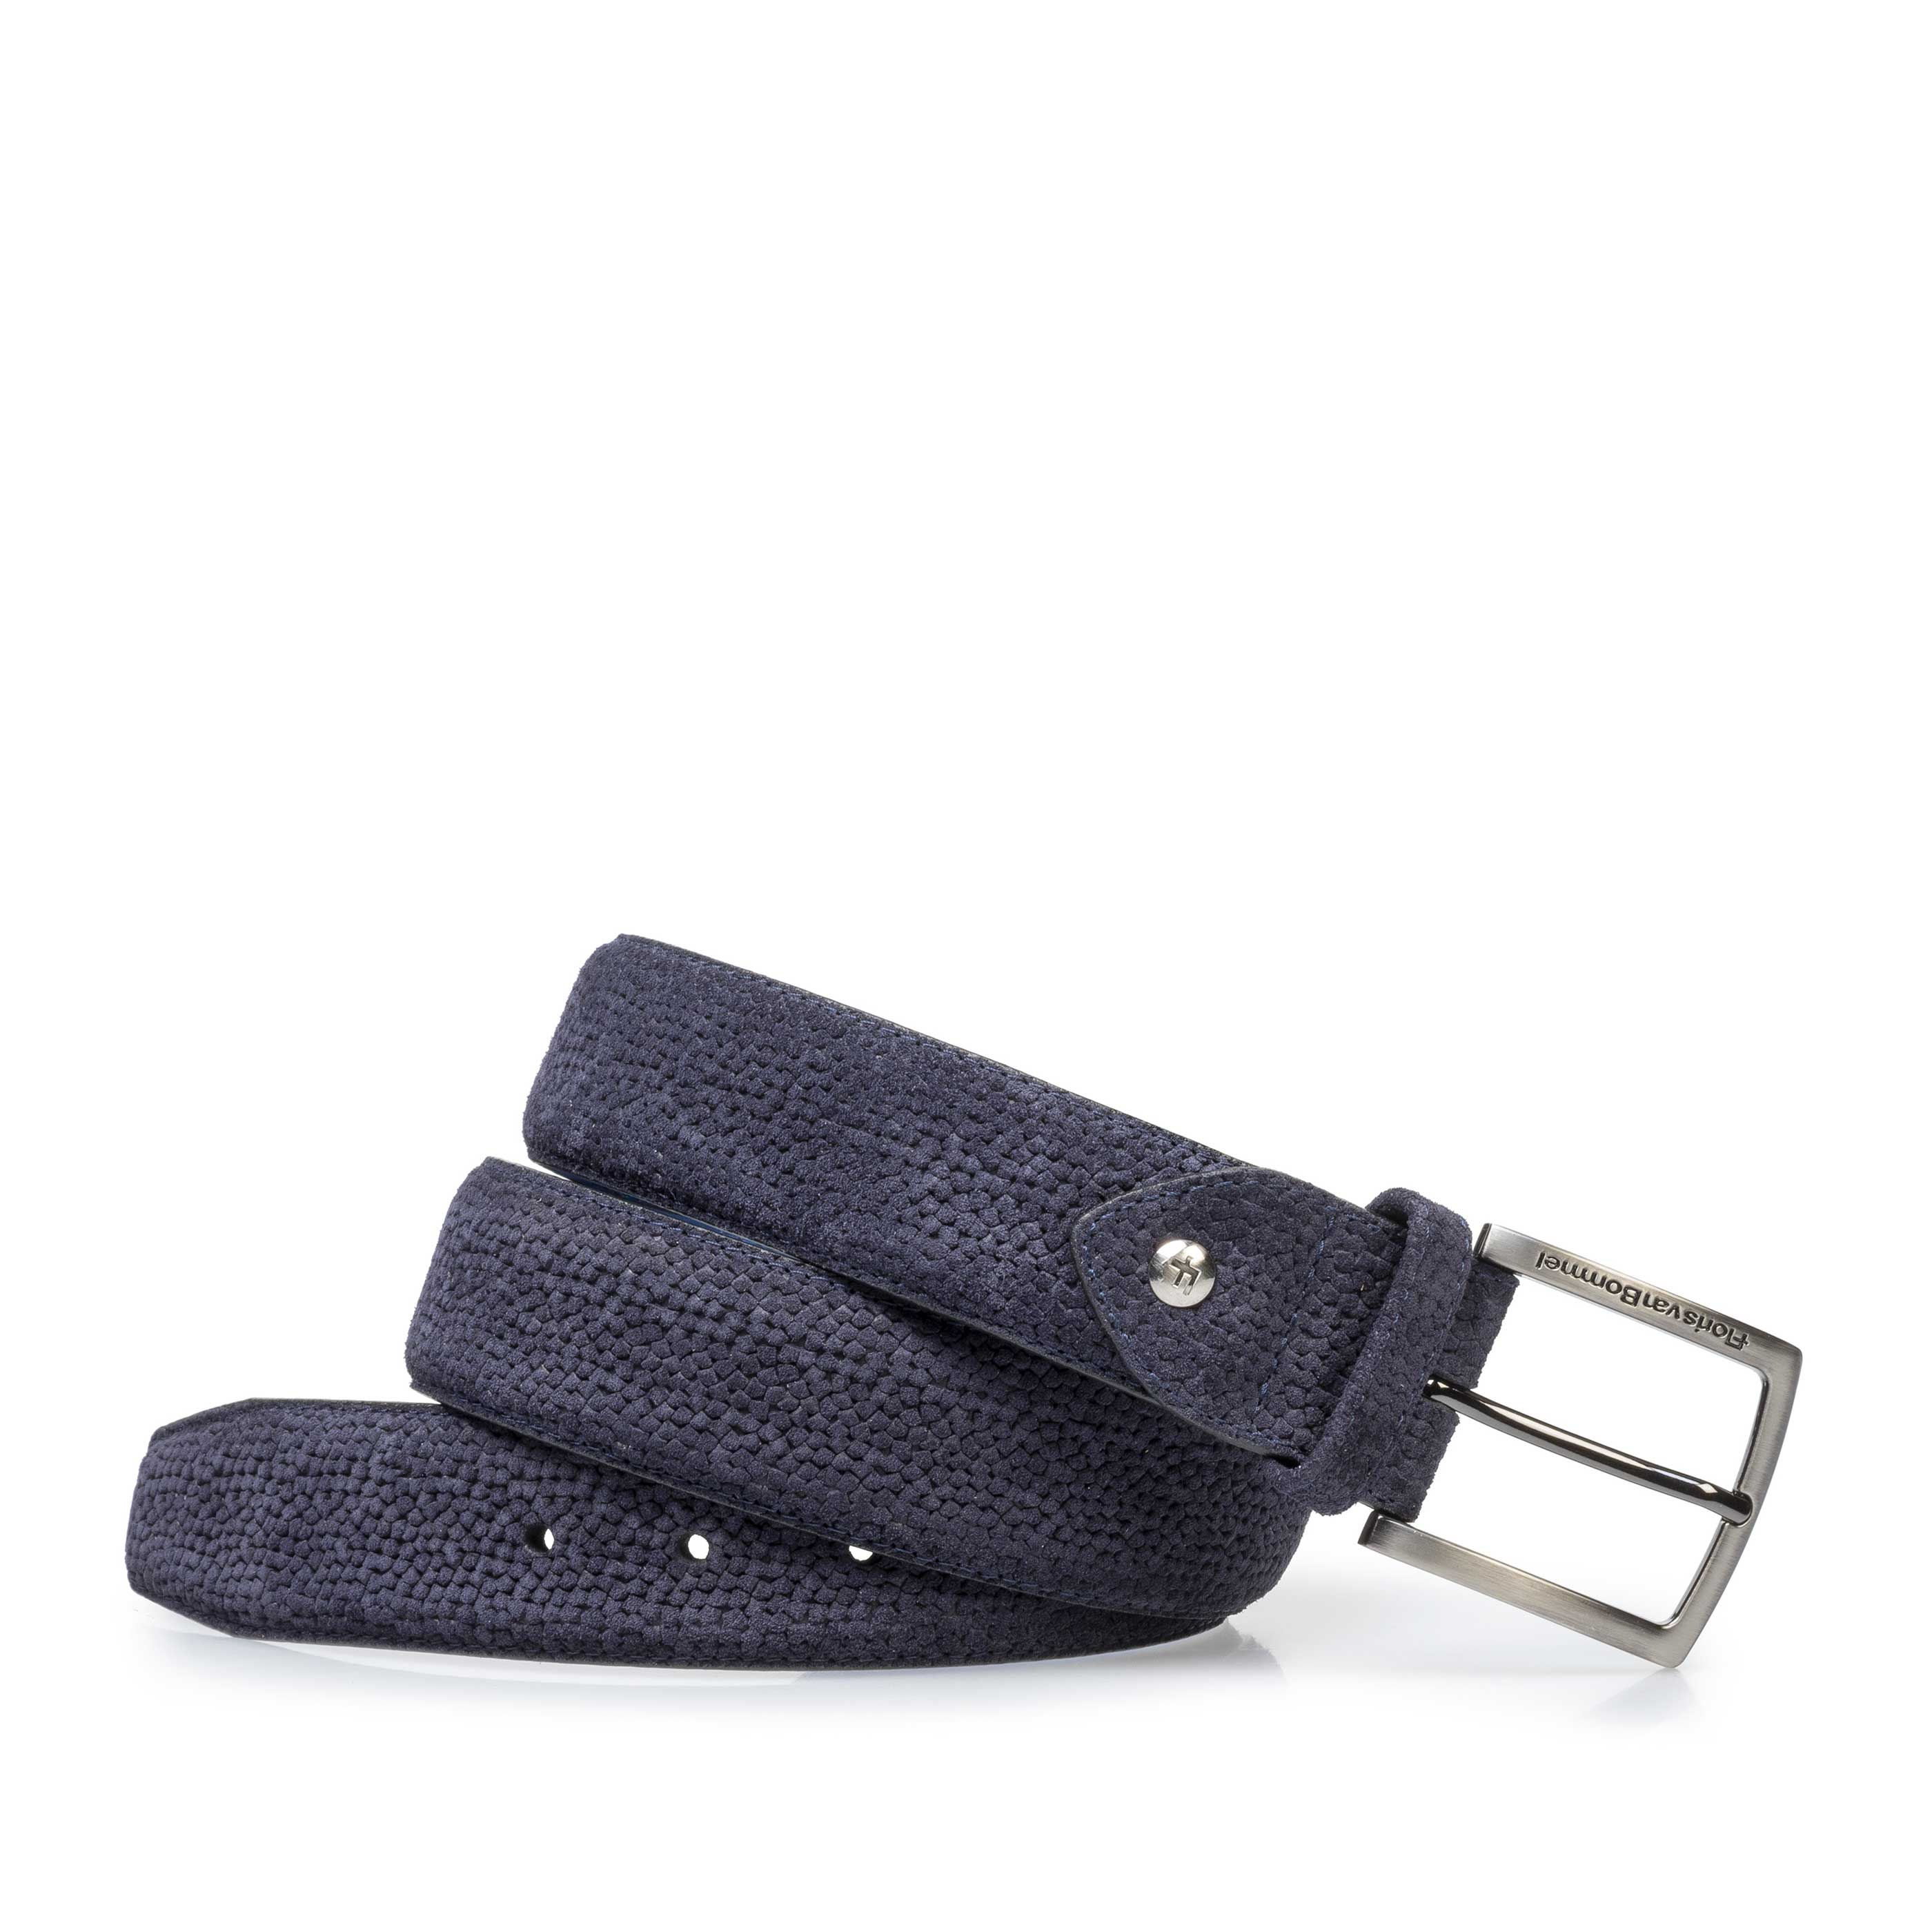 75202/10 - Dark blue suede leather belt with print